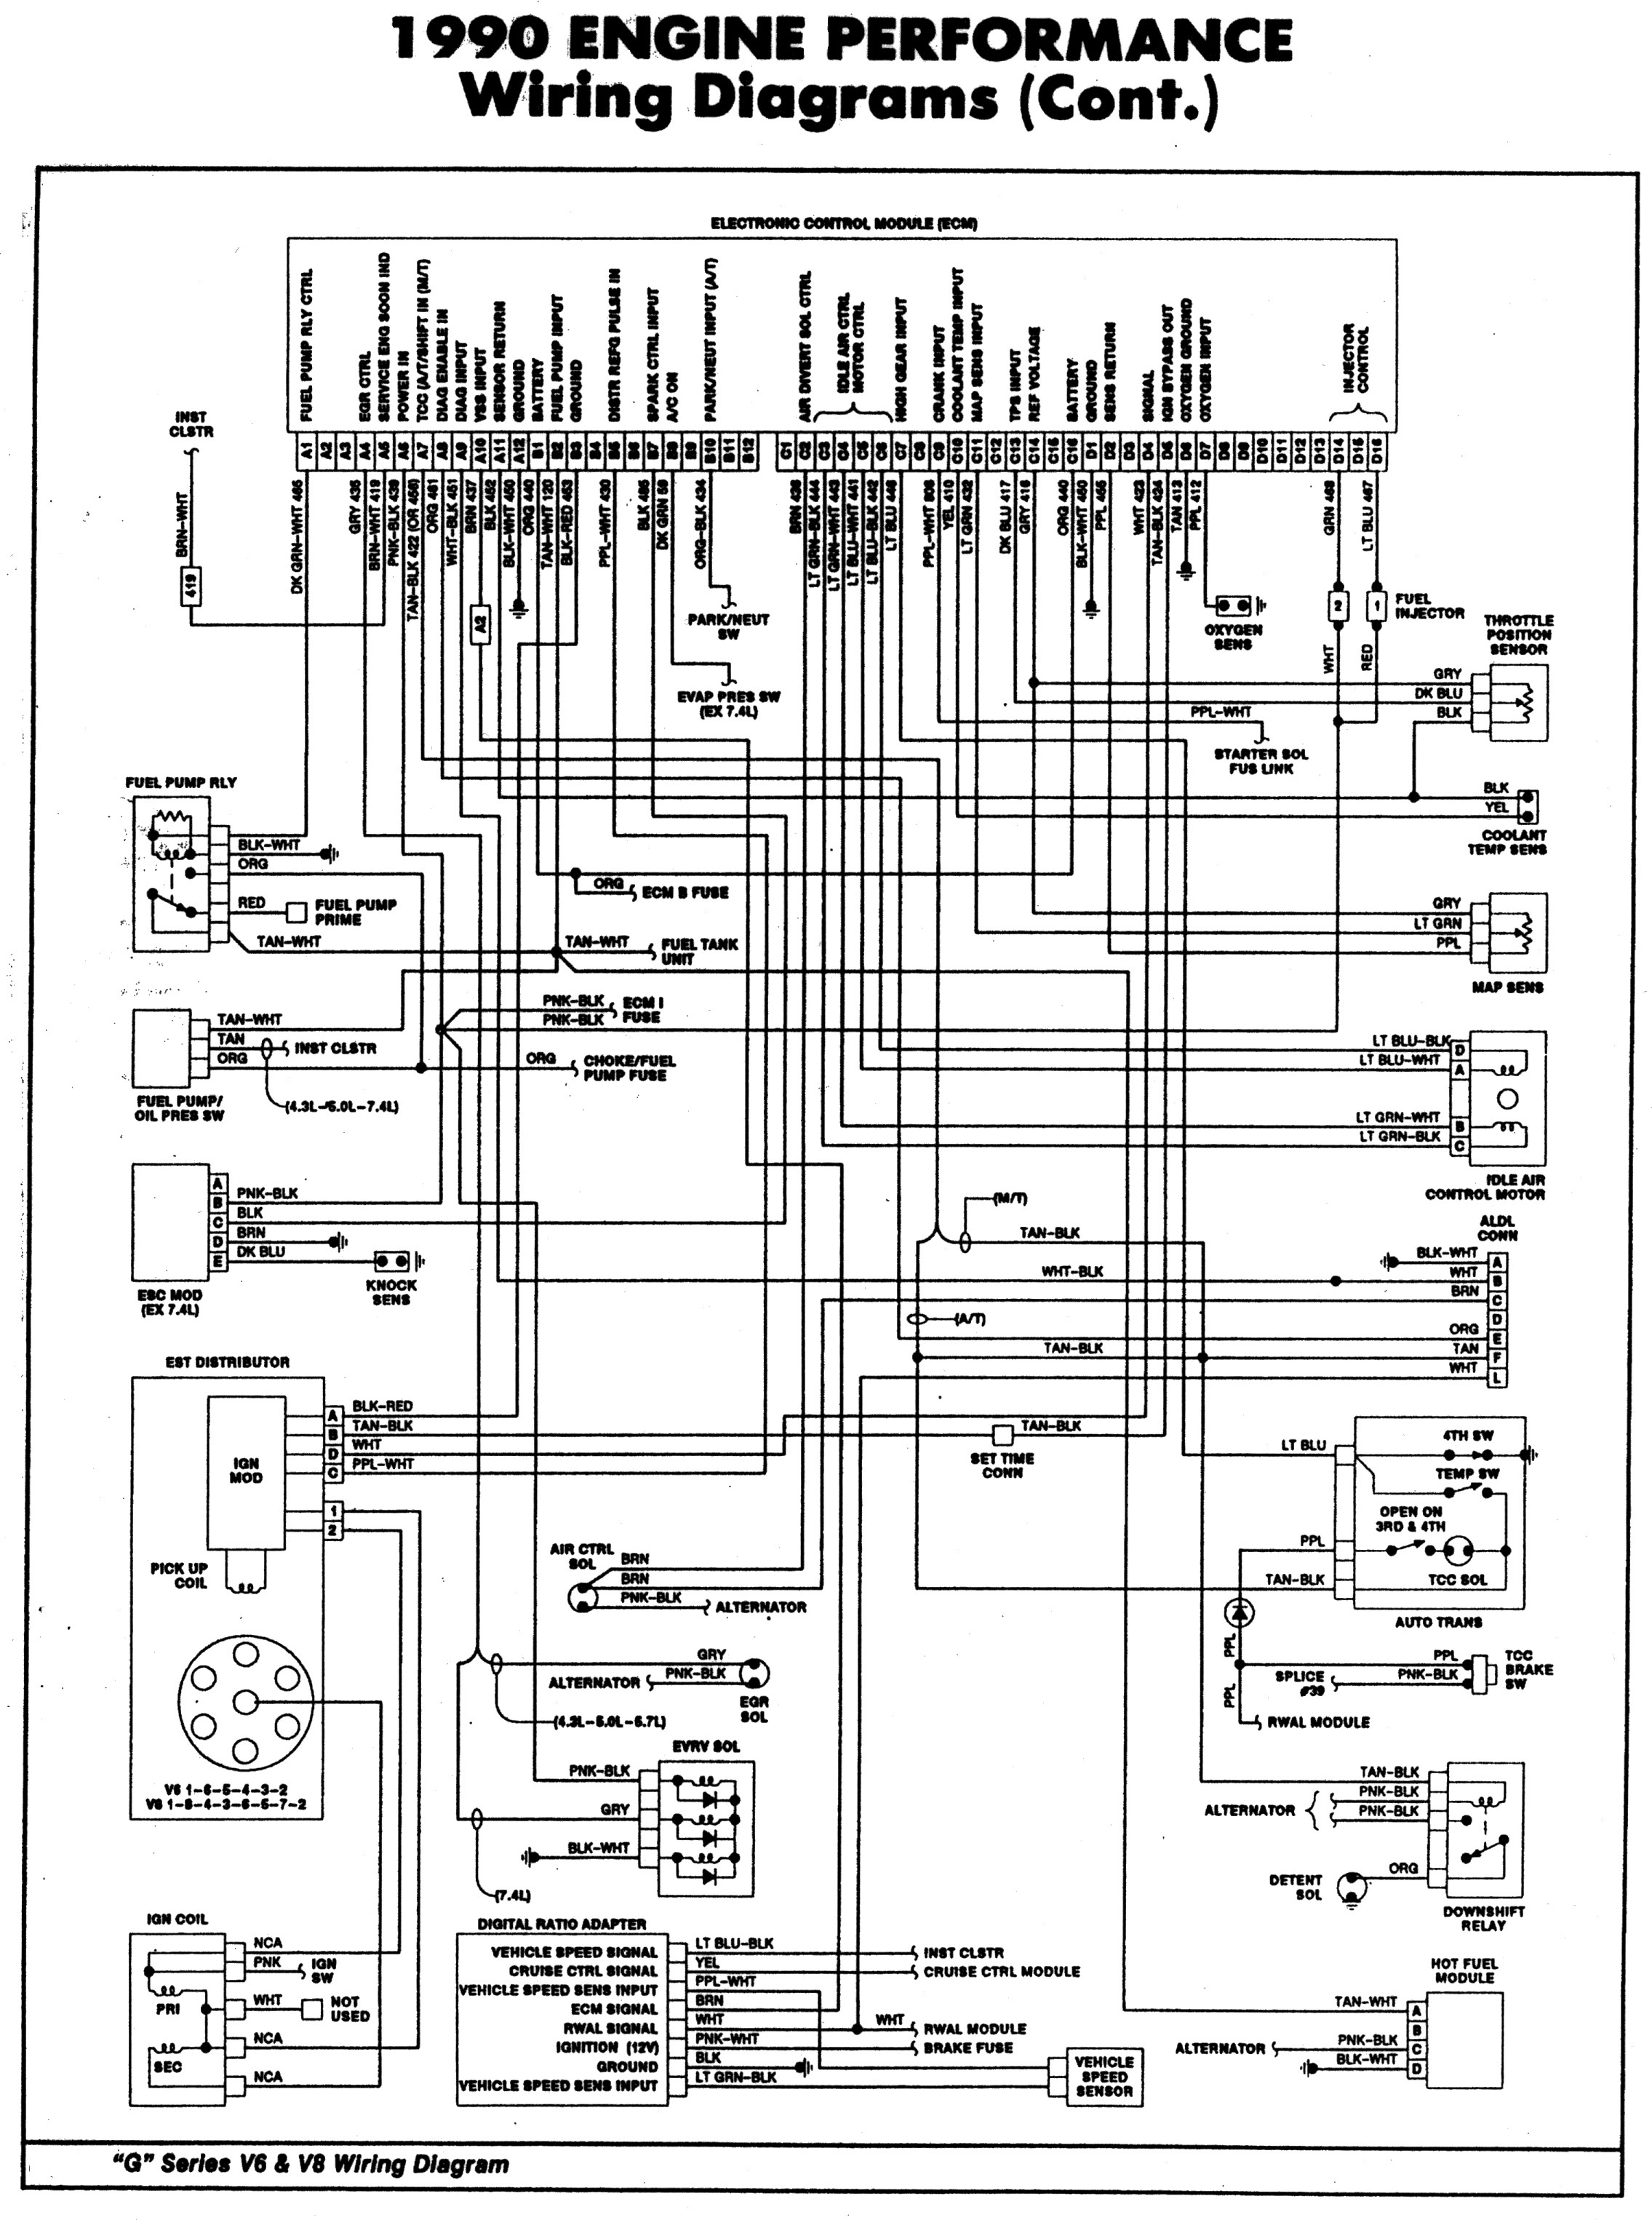 hight resolution of 1989 chevy pickup wiring diagram everything wiring diagram 1989 dodge pickup wiring diagram 89 chevy pickup